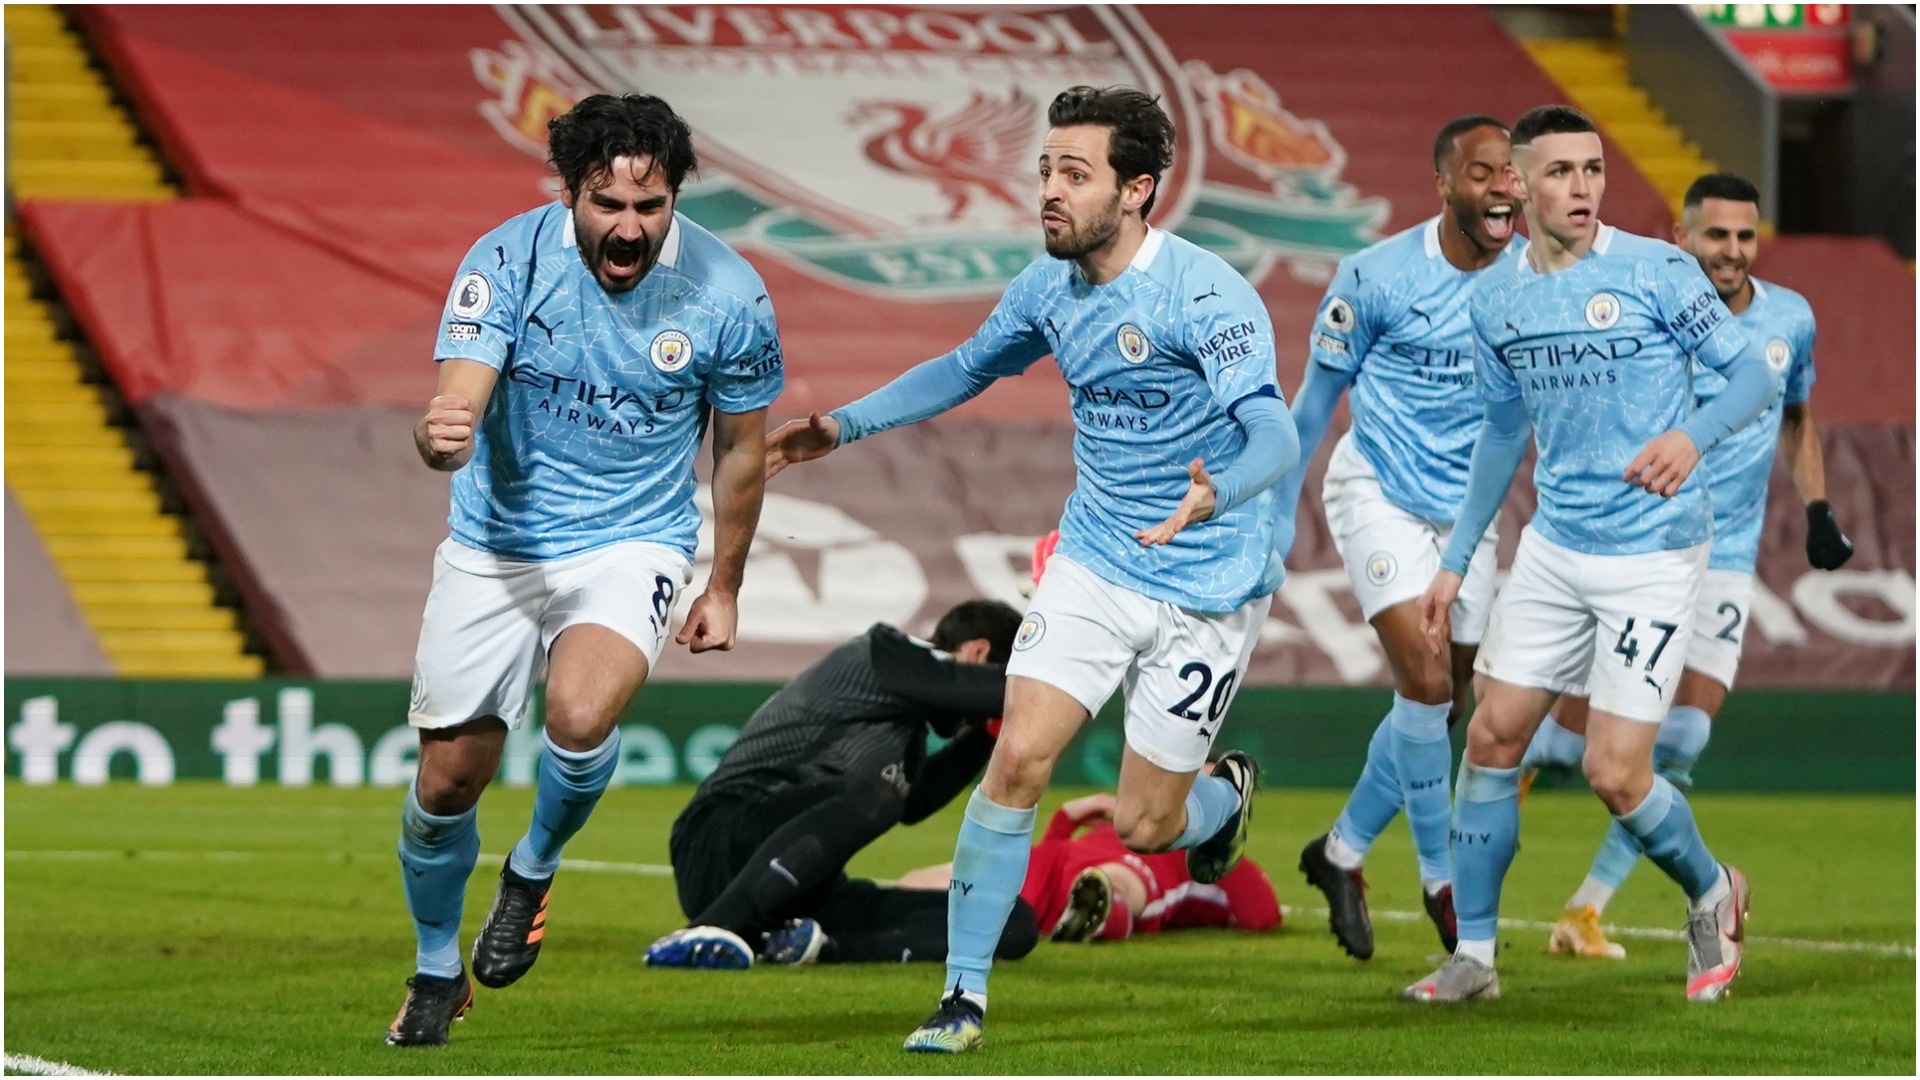 Liverpool 1-4 Manchester City: Guardiola finally gets Anfield win as champions collapse